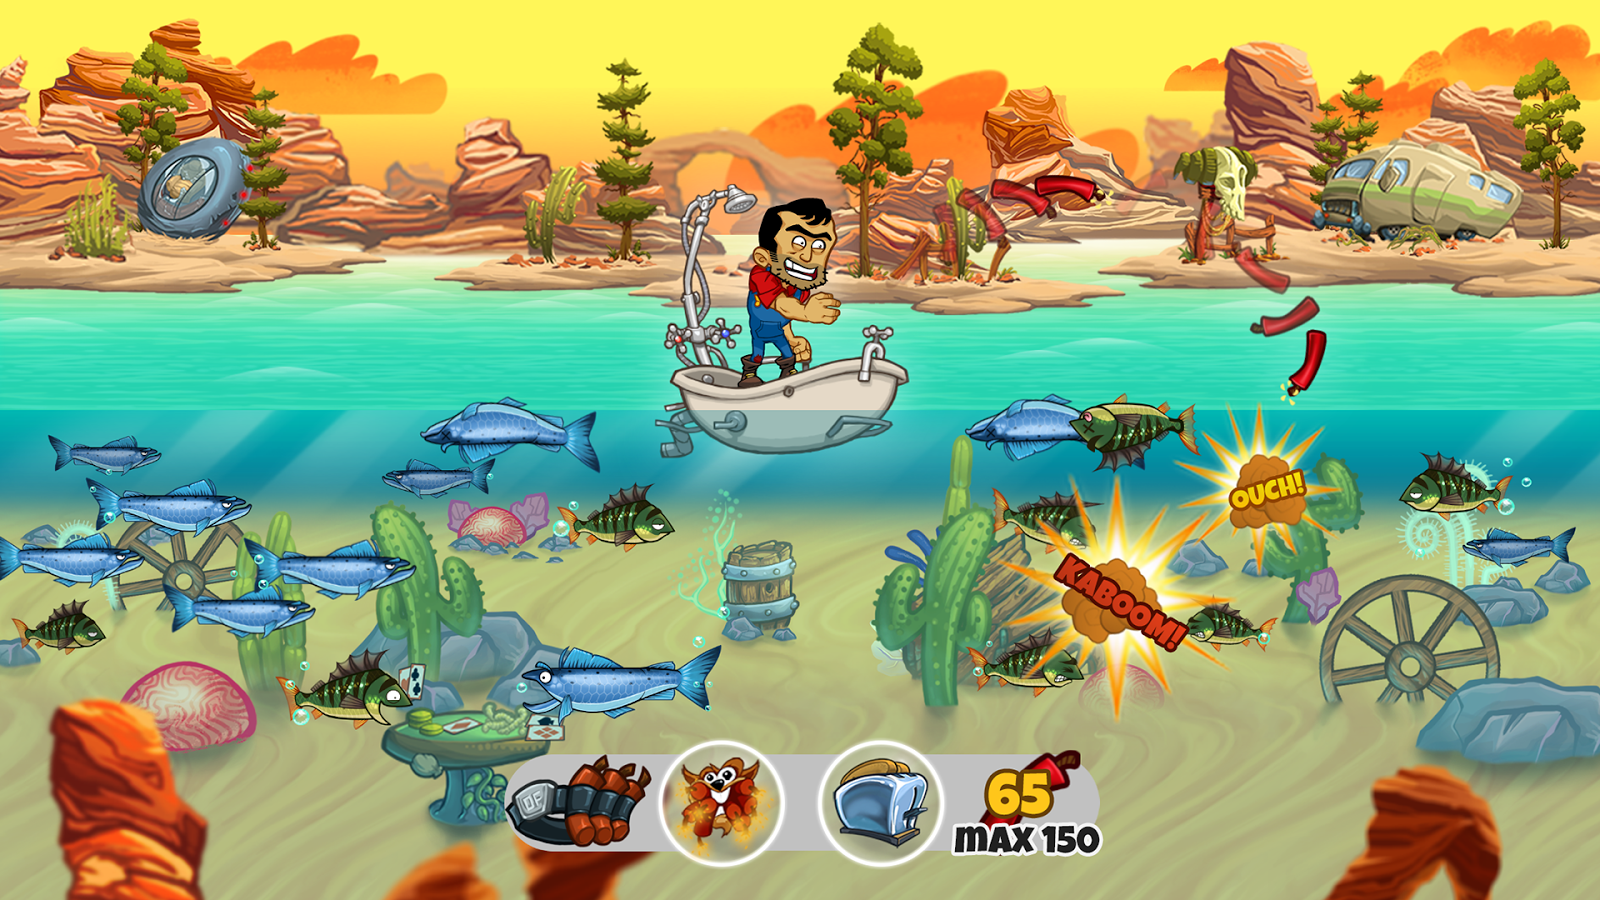 dynamite fishing world games 2015 promotional art mobygames